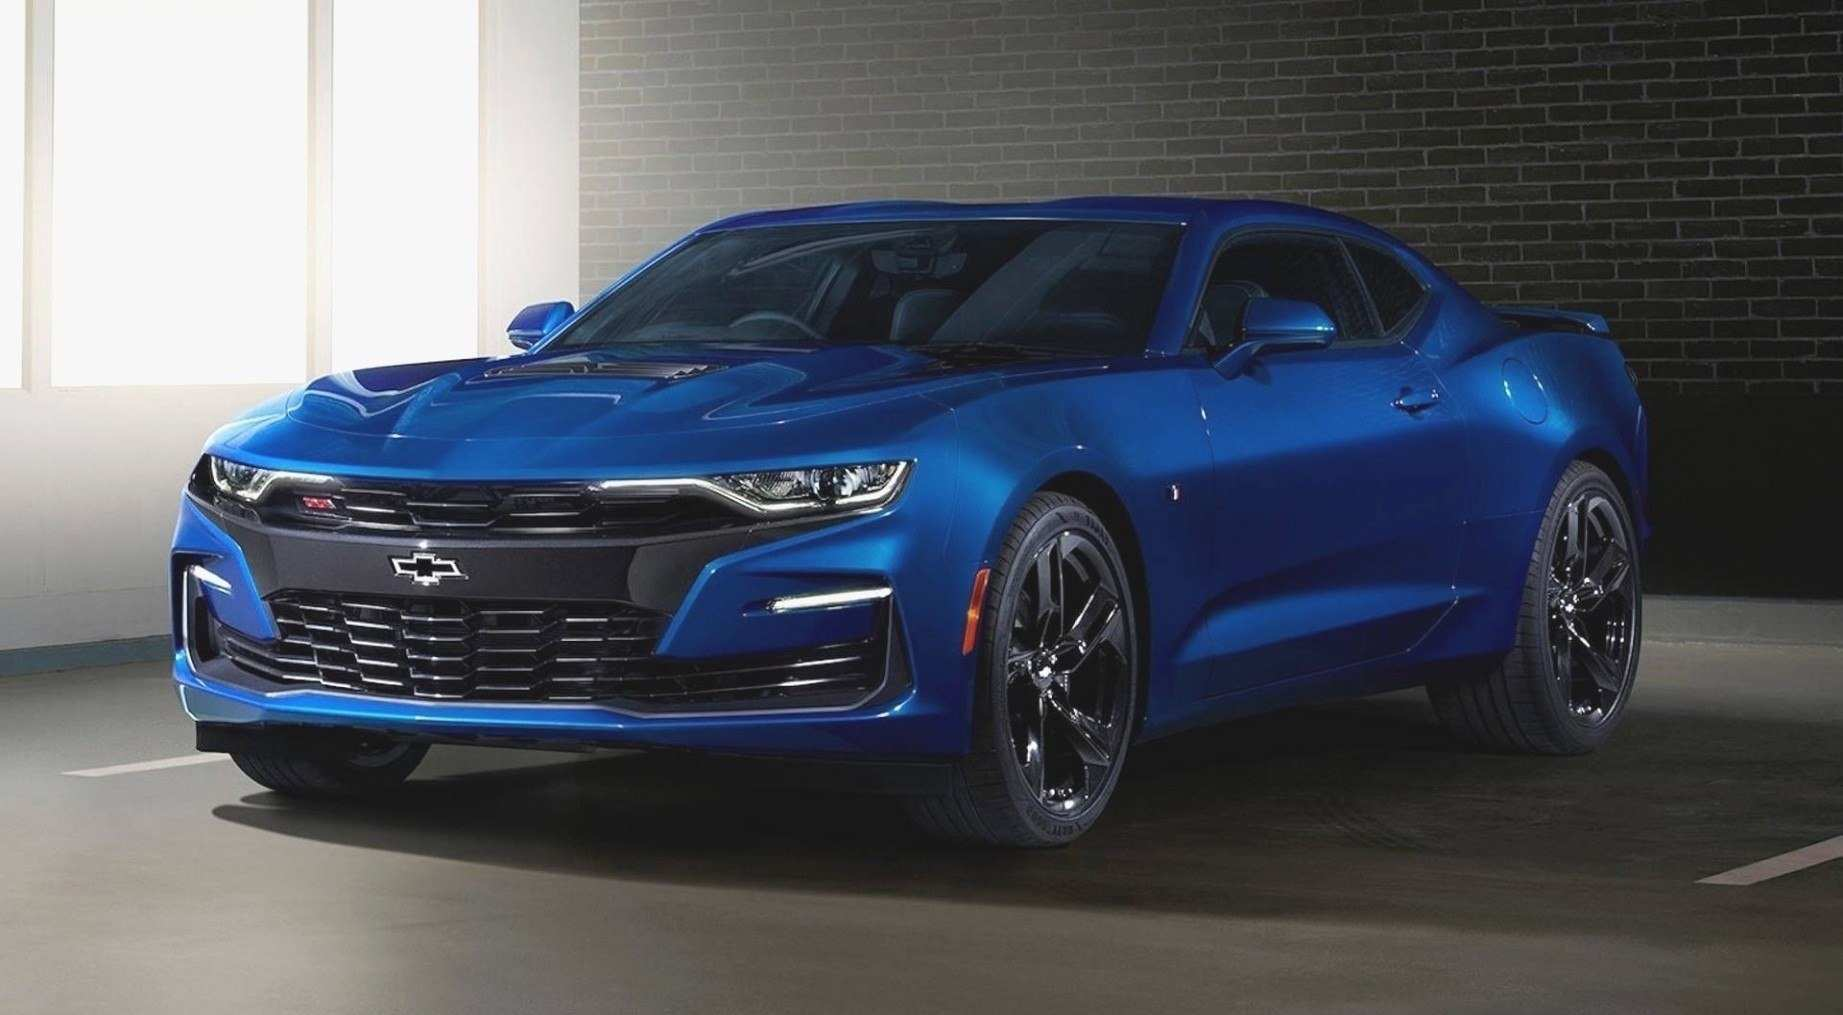 71 All New 2020 Chevy Chevelle SS Specs and Review with 2020 Chevy Chevelle SS